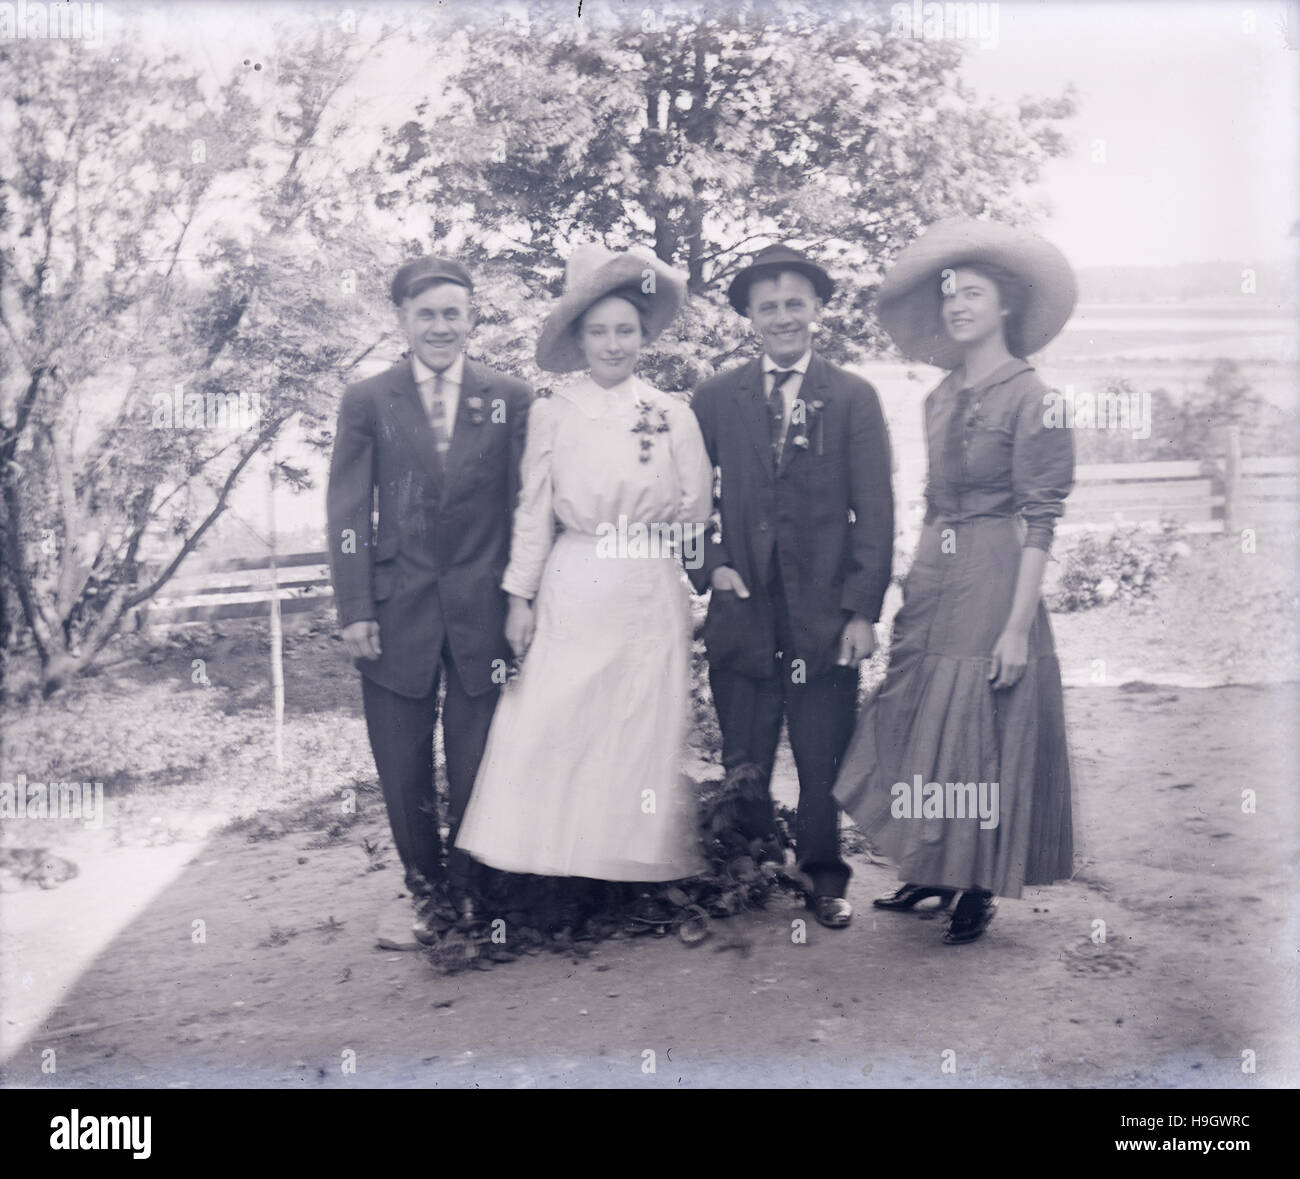 Antique c1900 photograph, two couples in late Victorian dress. Long shutter exposure created slight motion blur. Stock Photo